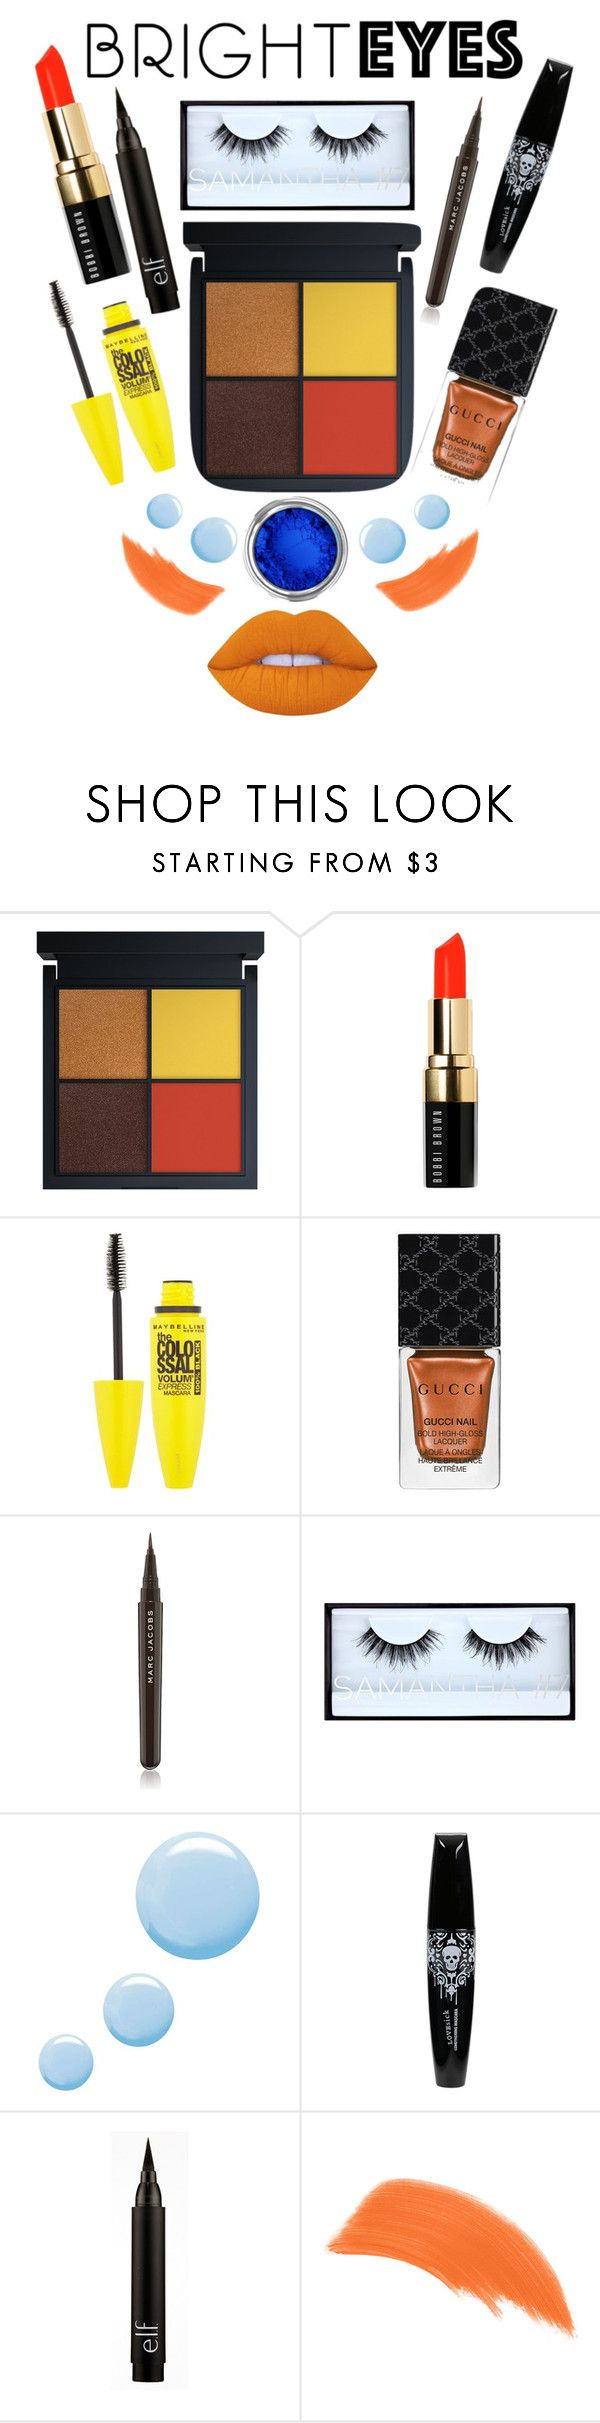 """""""Bright Eyes """" by stylebycharlene on Polyvore featuring beauty, Bobbi Brown Cosmetics, Maybelline, Gucci, Marc Jacobs, Huda Beauty, Topshop, By Terry, Lime Crime and Beauty"""